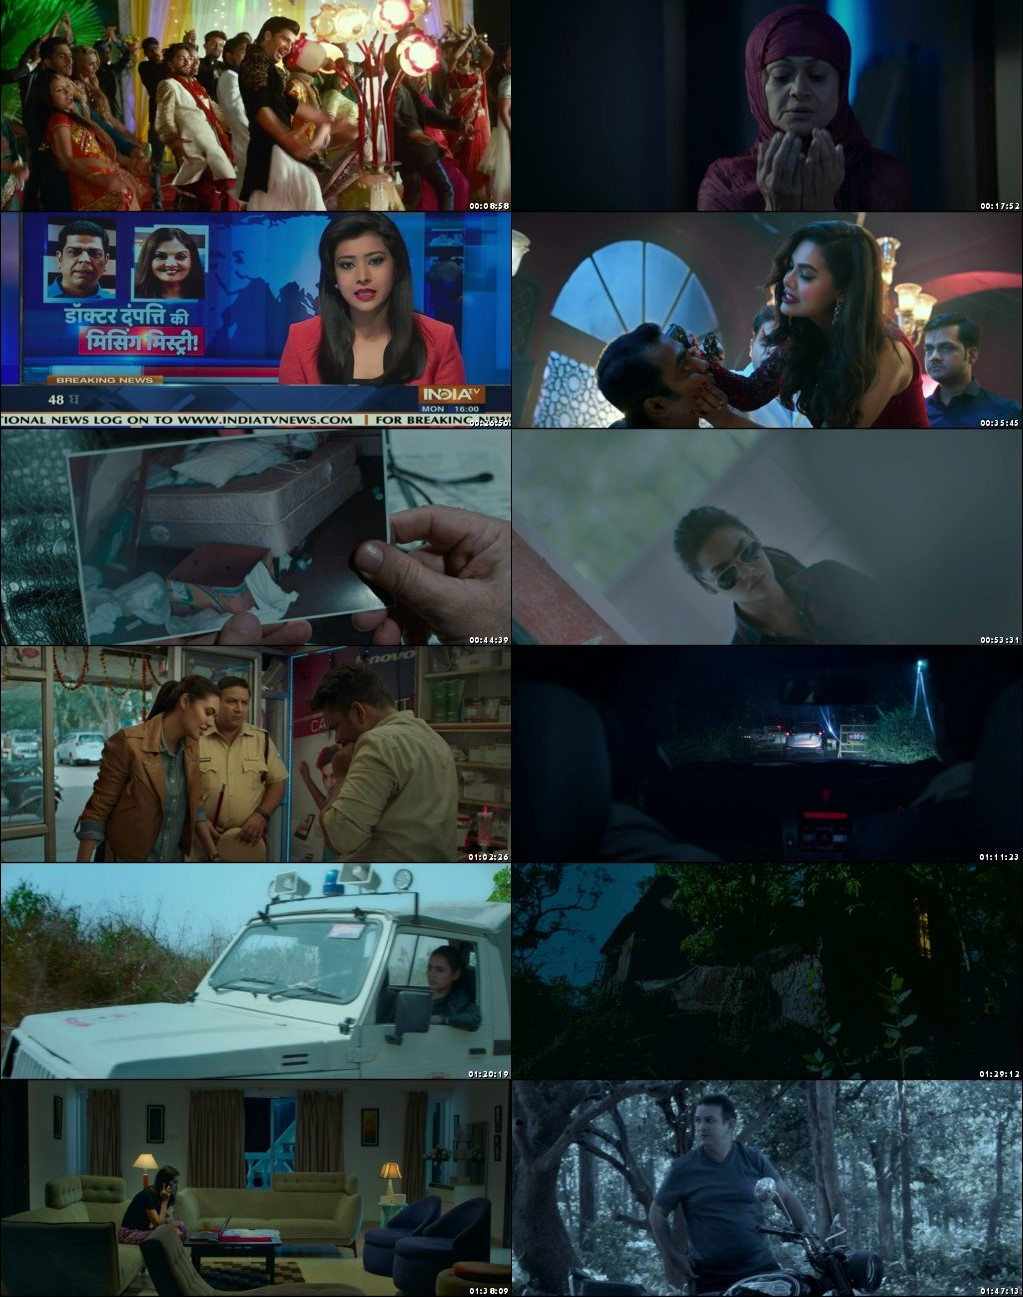 One Day Justice Delivered 2019 Full Hindi Movie Online Watch